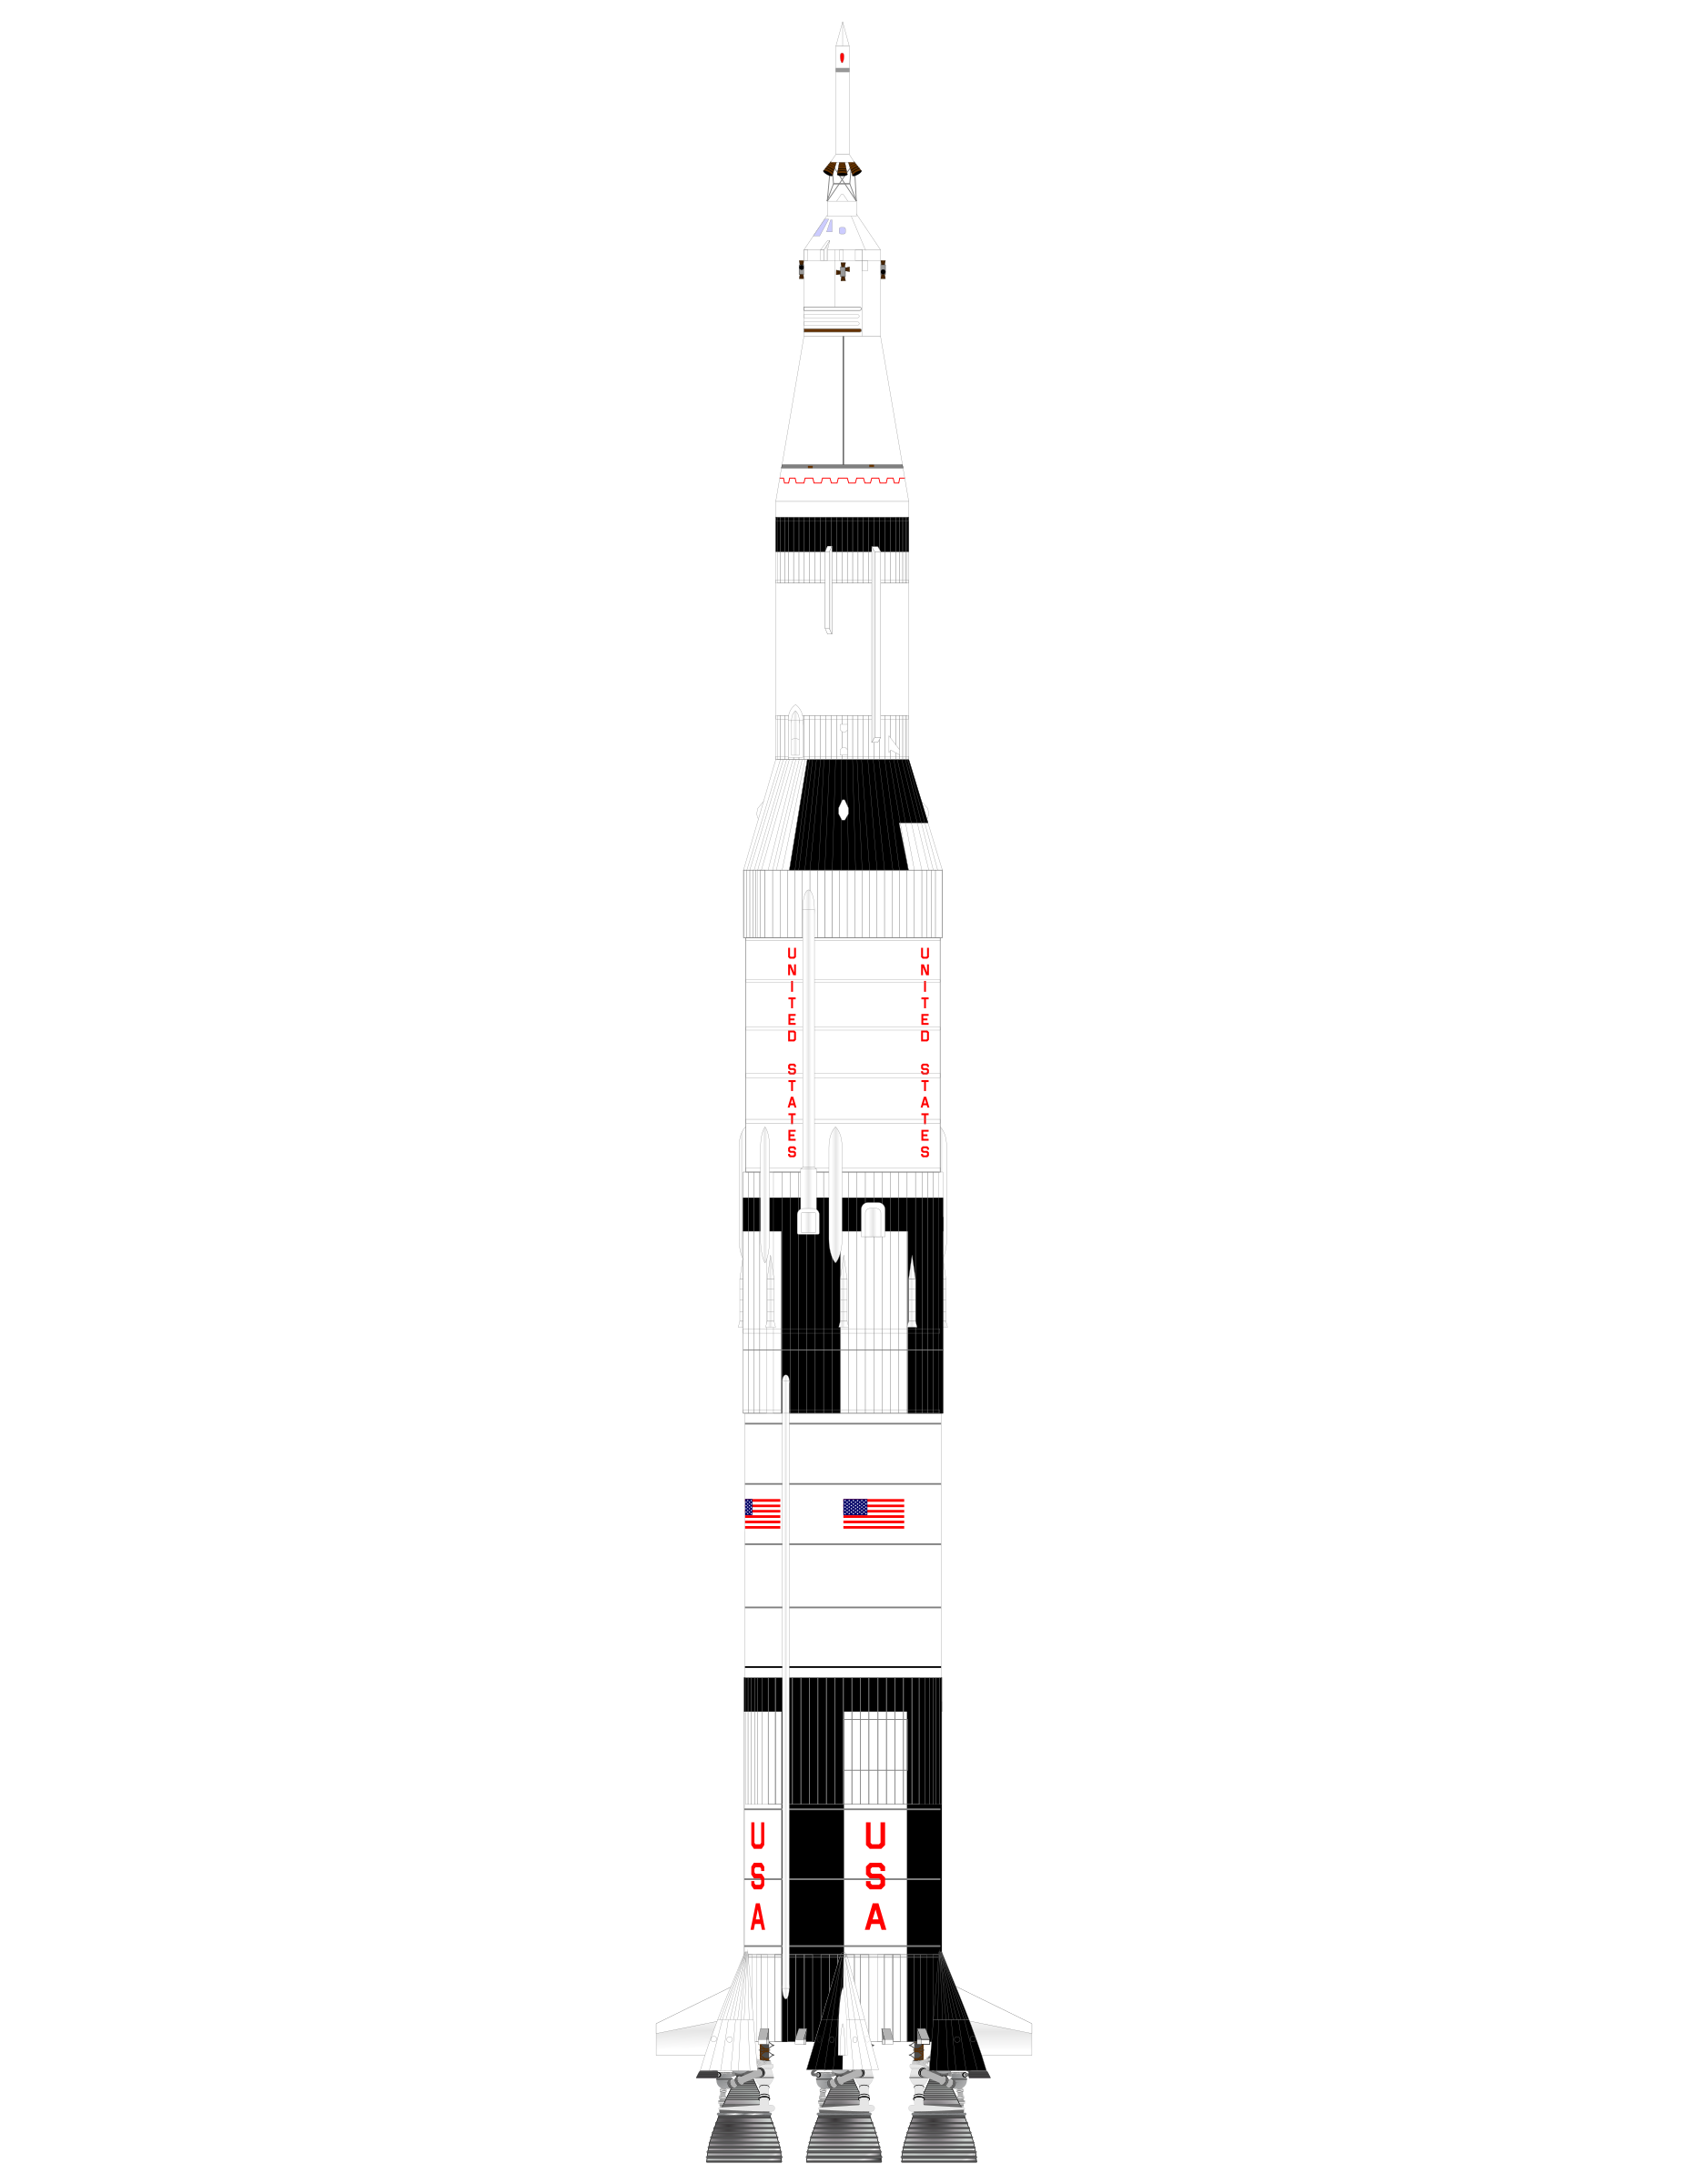 ROCKET SATURN V by charner1963